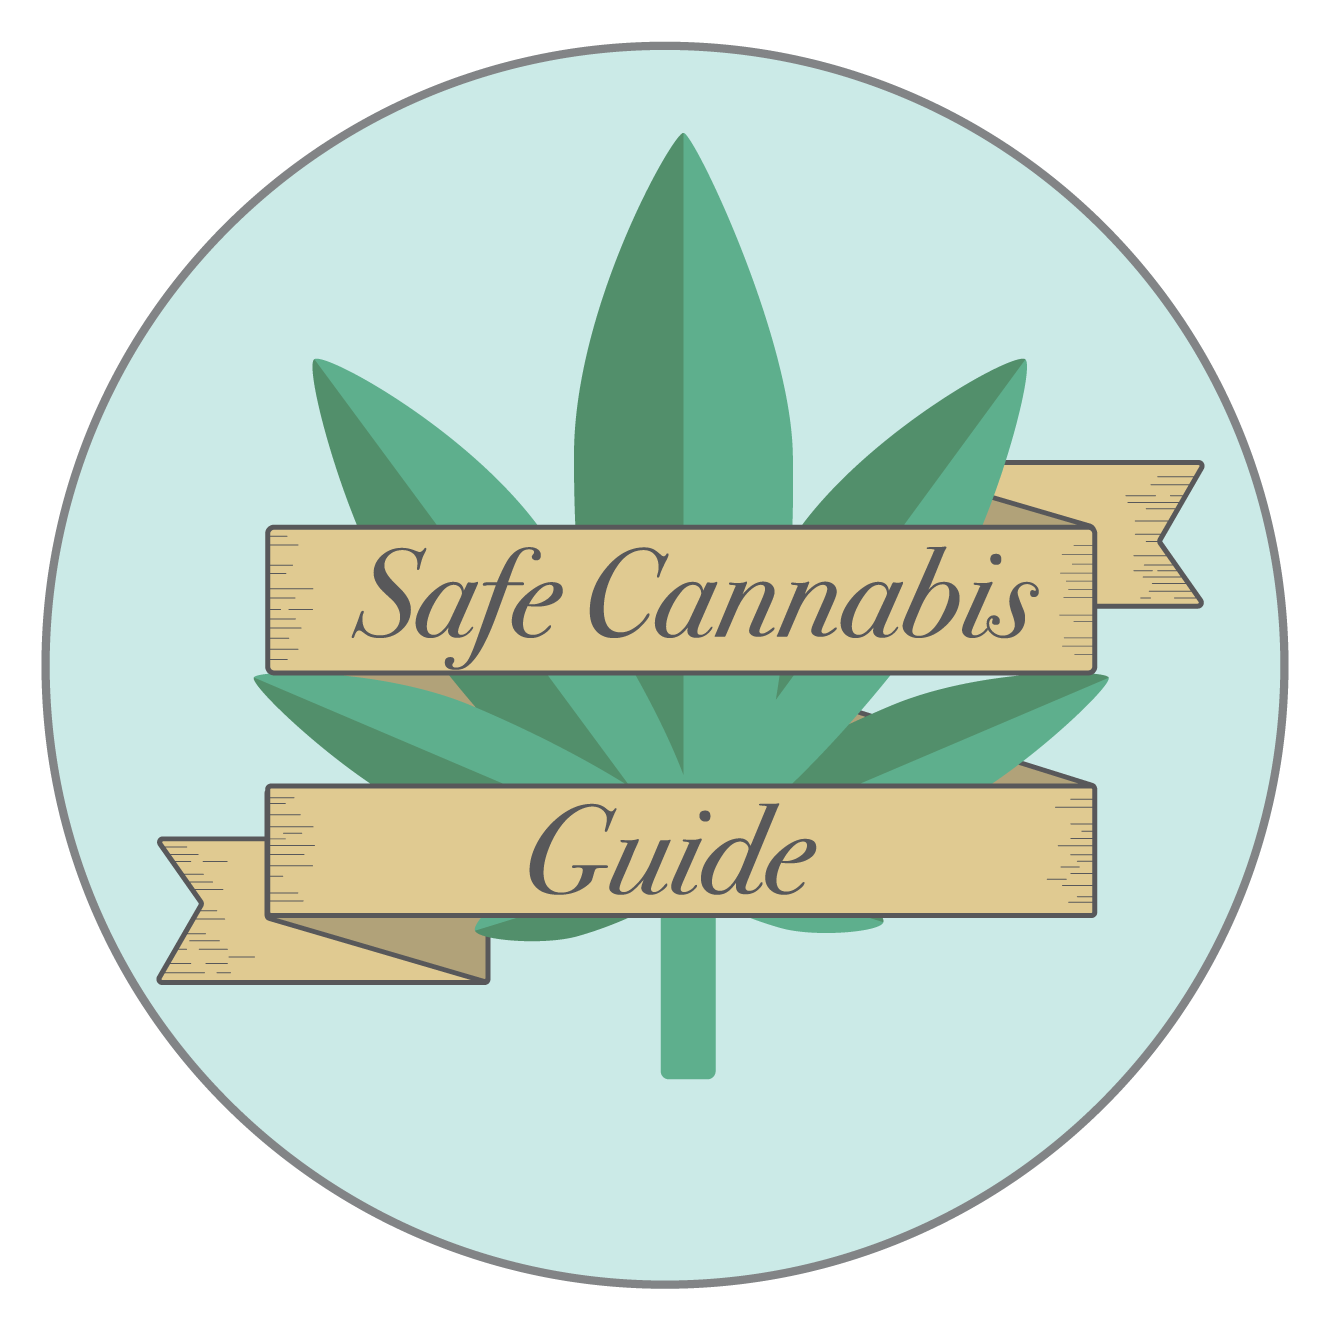 Safe Cannabis Guide